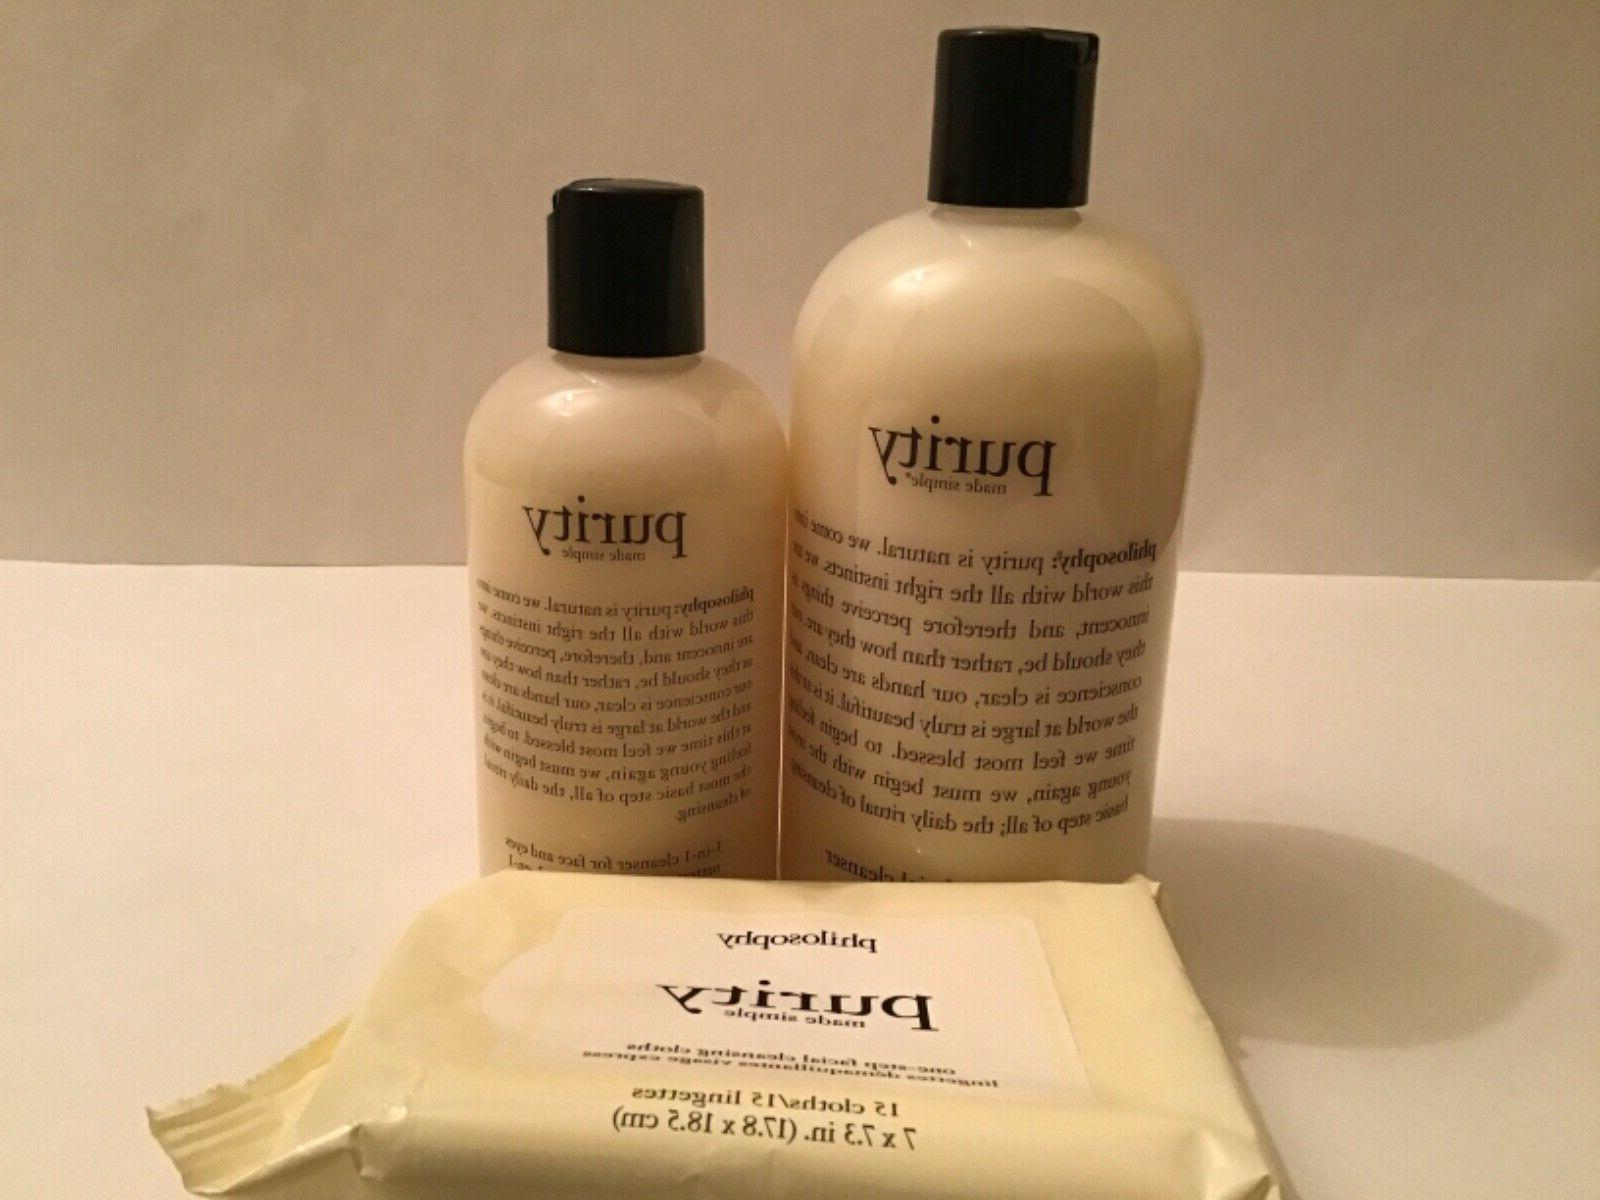 Philosophy One Facial Cleanser of